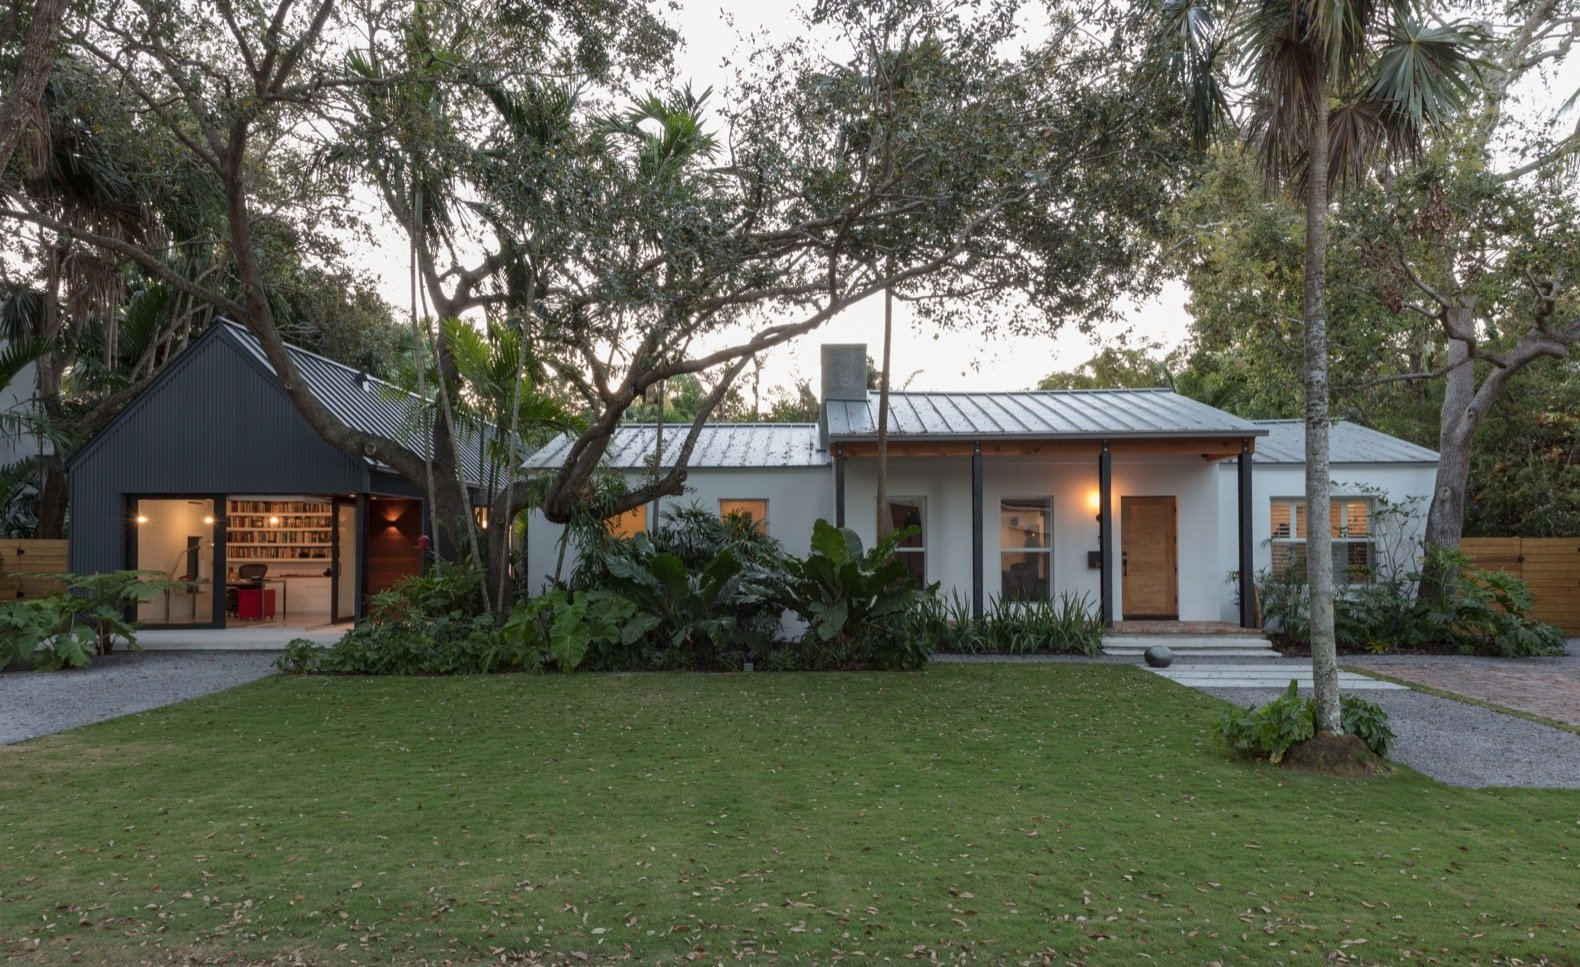 Photo 3 of 21 in A Minimalist Bungalow in Miami Welcomes a Sleek New